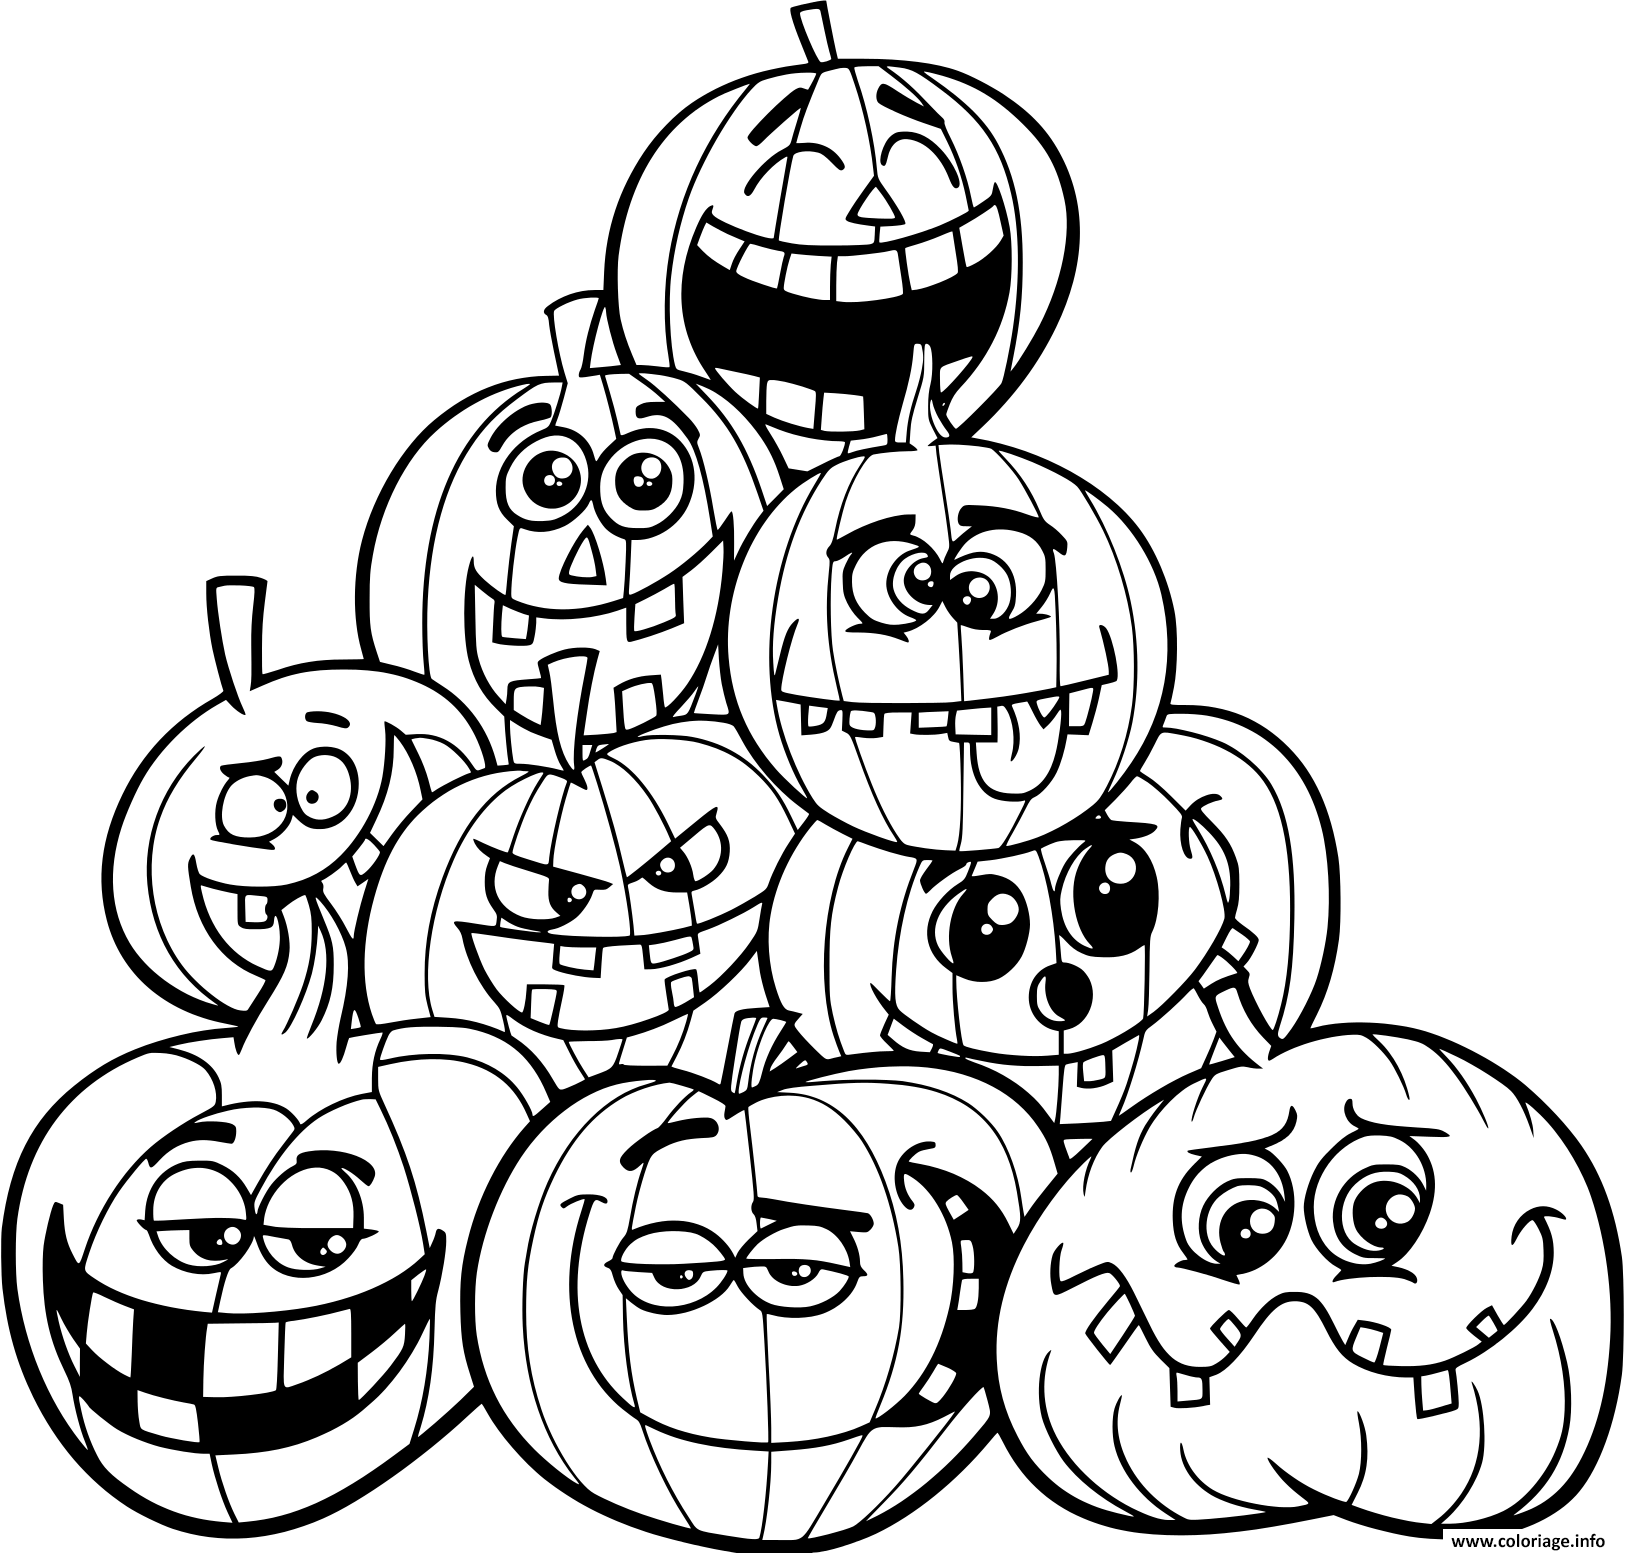 Charmant Coloriage Halloween 80 Dans Coloriage Pages for Coloriage Halloween